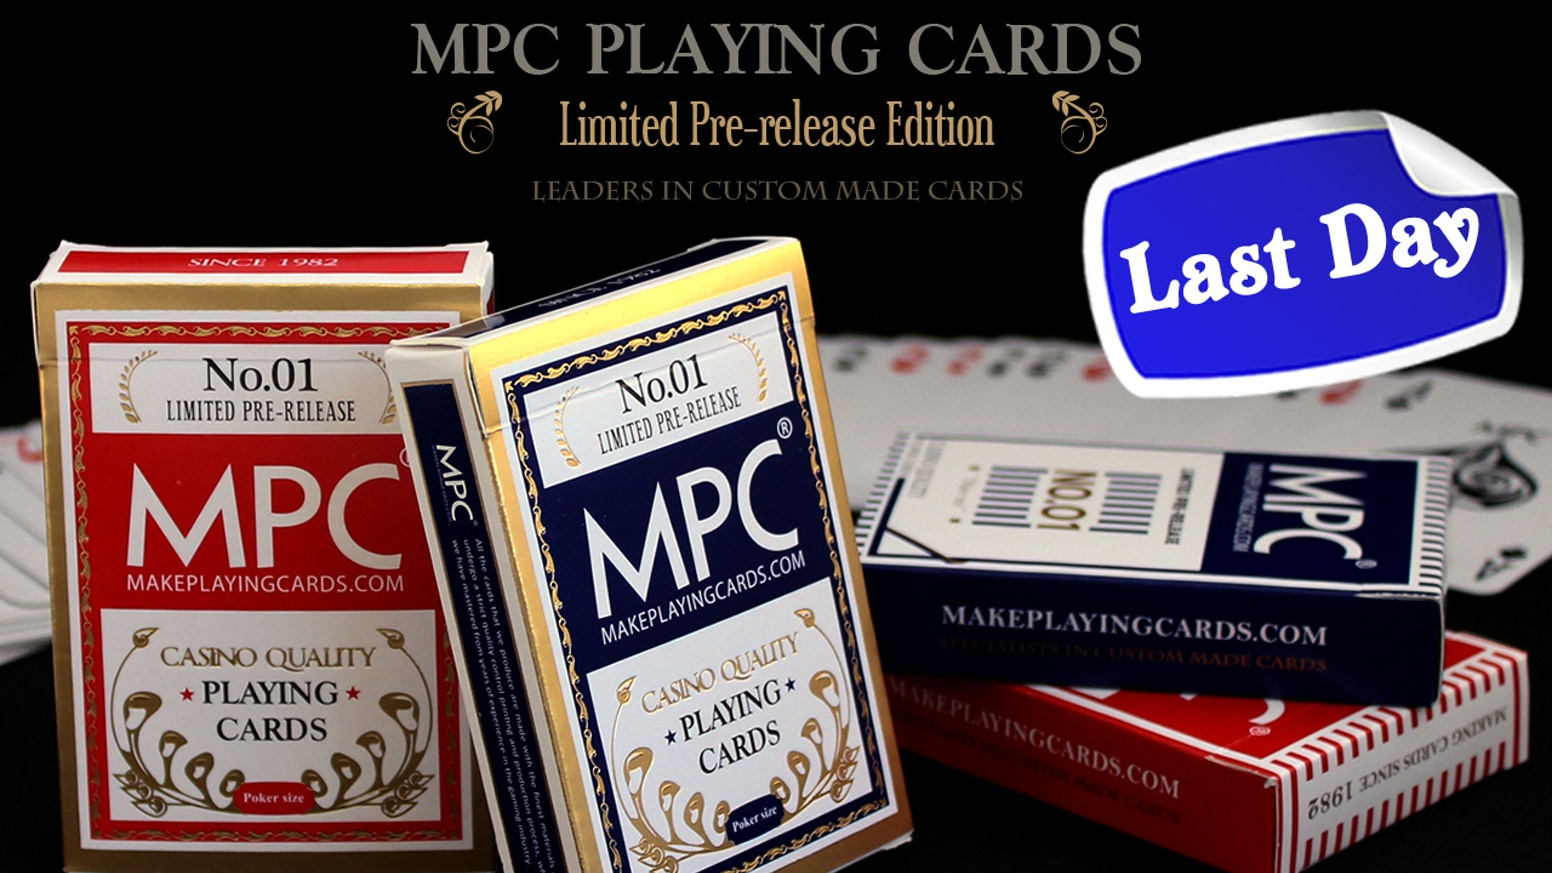 Get your hands on a Piece Of History. After 32 years, we are releasing our 1st Ever MPC Branded Cards, a Special Pre-launch Edition.